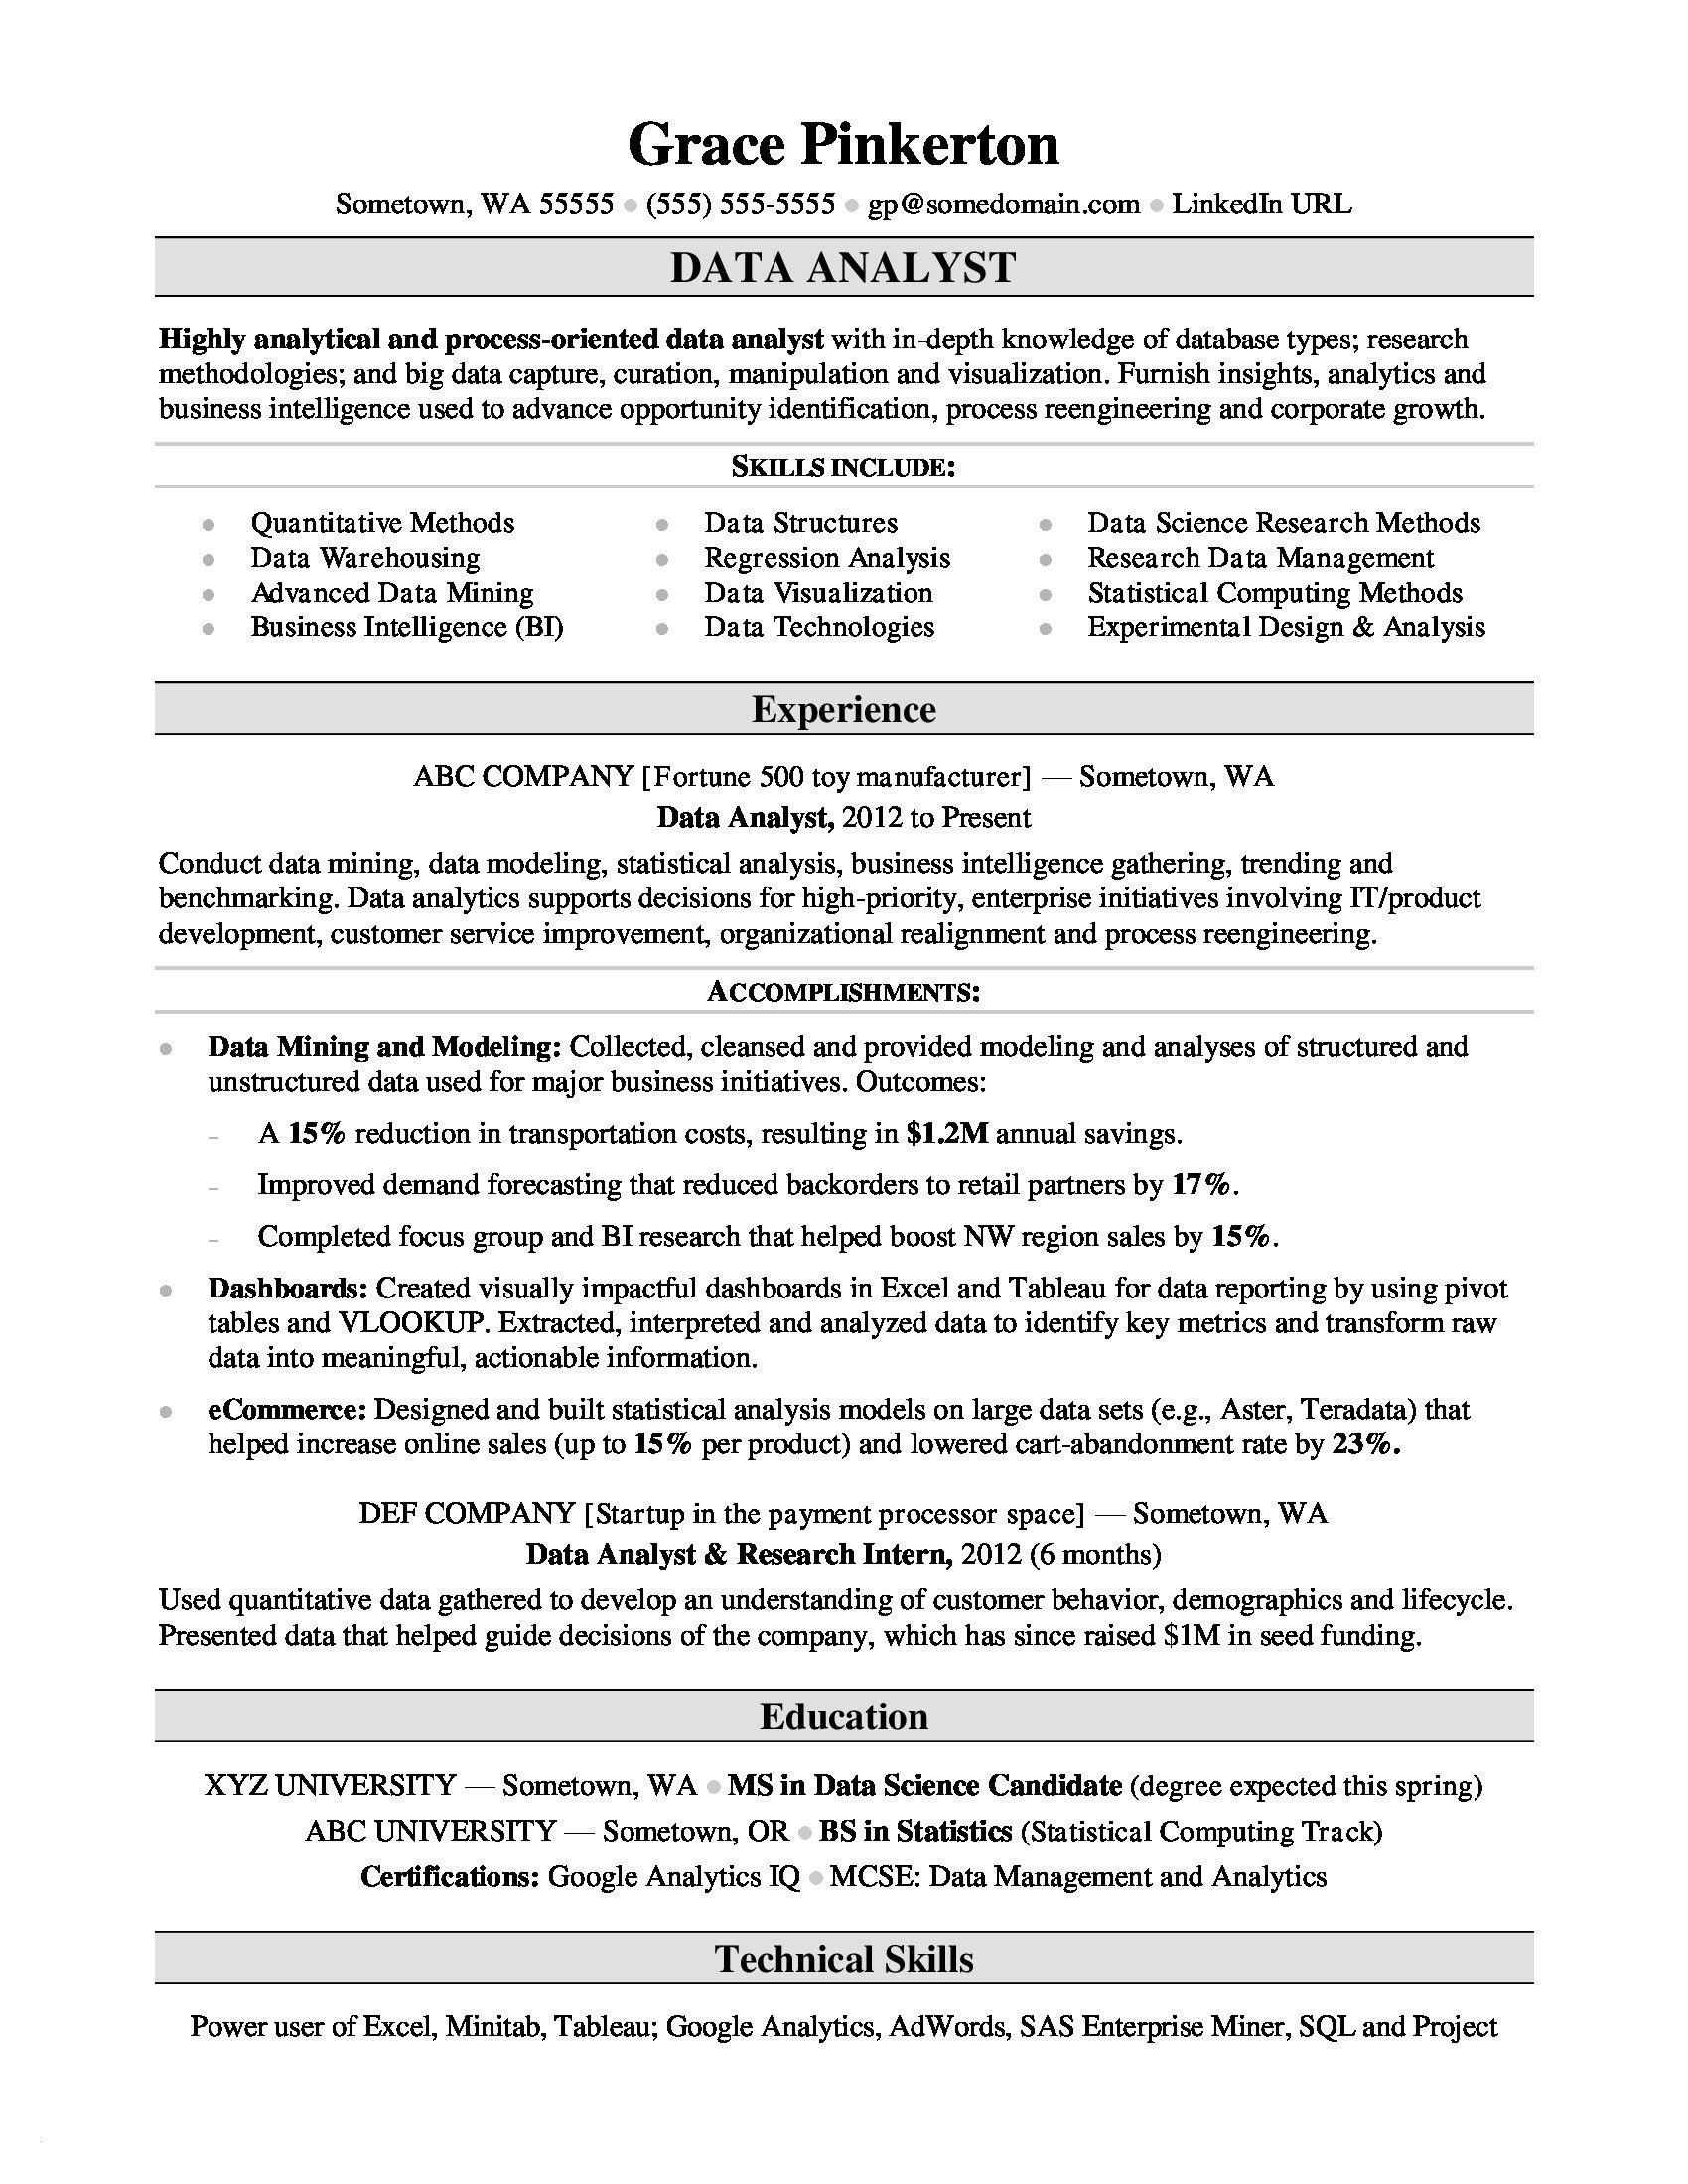 Business Analyst Resume - Entry Level Business Analyst Resume New Awesome Healthcare Business